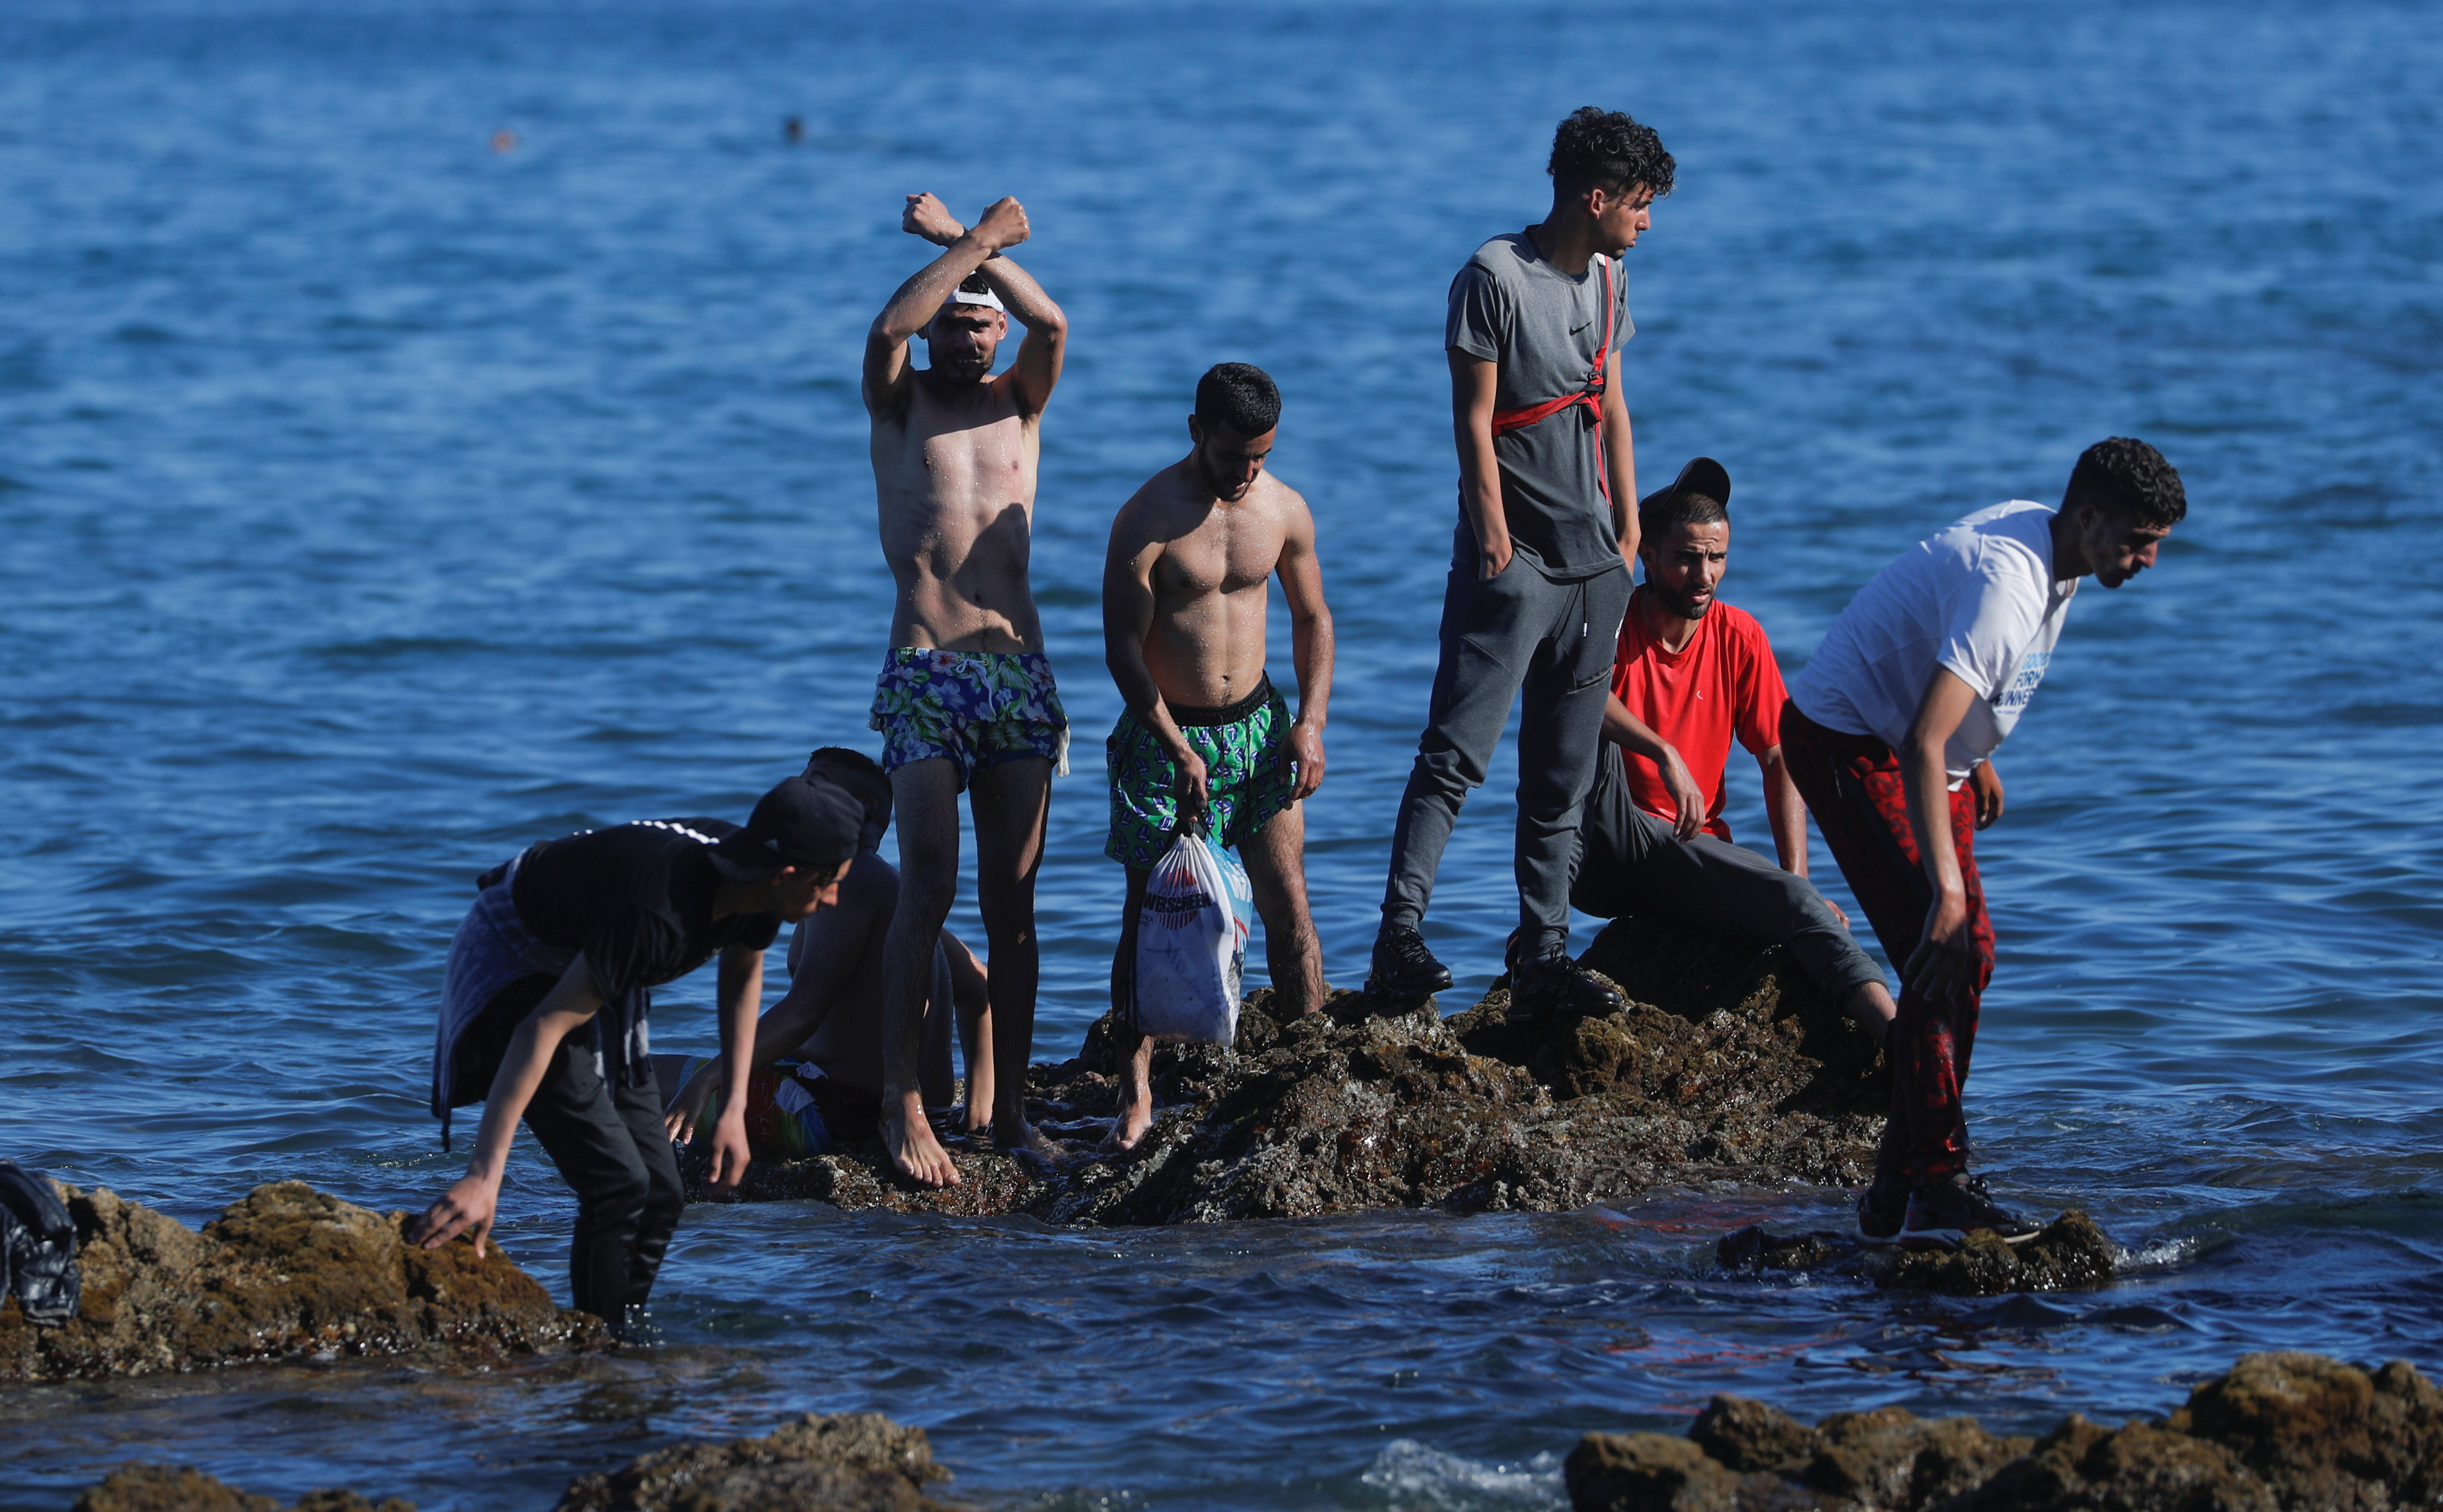 Moroccan citizens stand on the rocks at El Tarajal beach, near the fence between the Spanish-Moroccan border, after thousands of migrants swam across this border during last days, in Ceuta, Spain, May 18, 2021. REUTERS/Jon Nazca